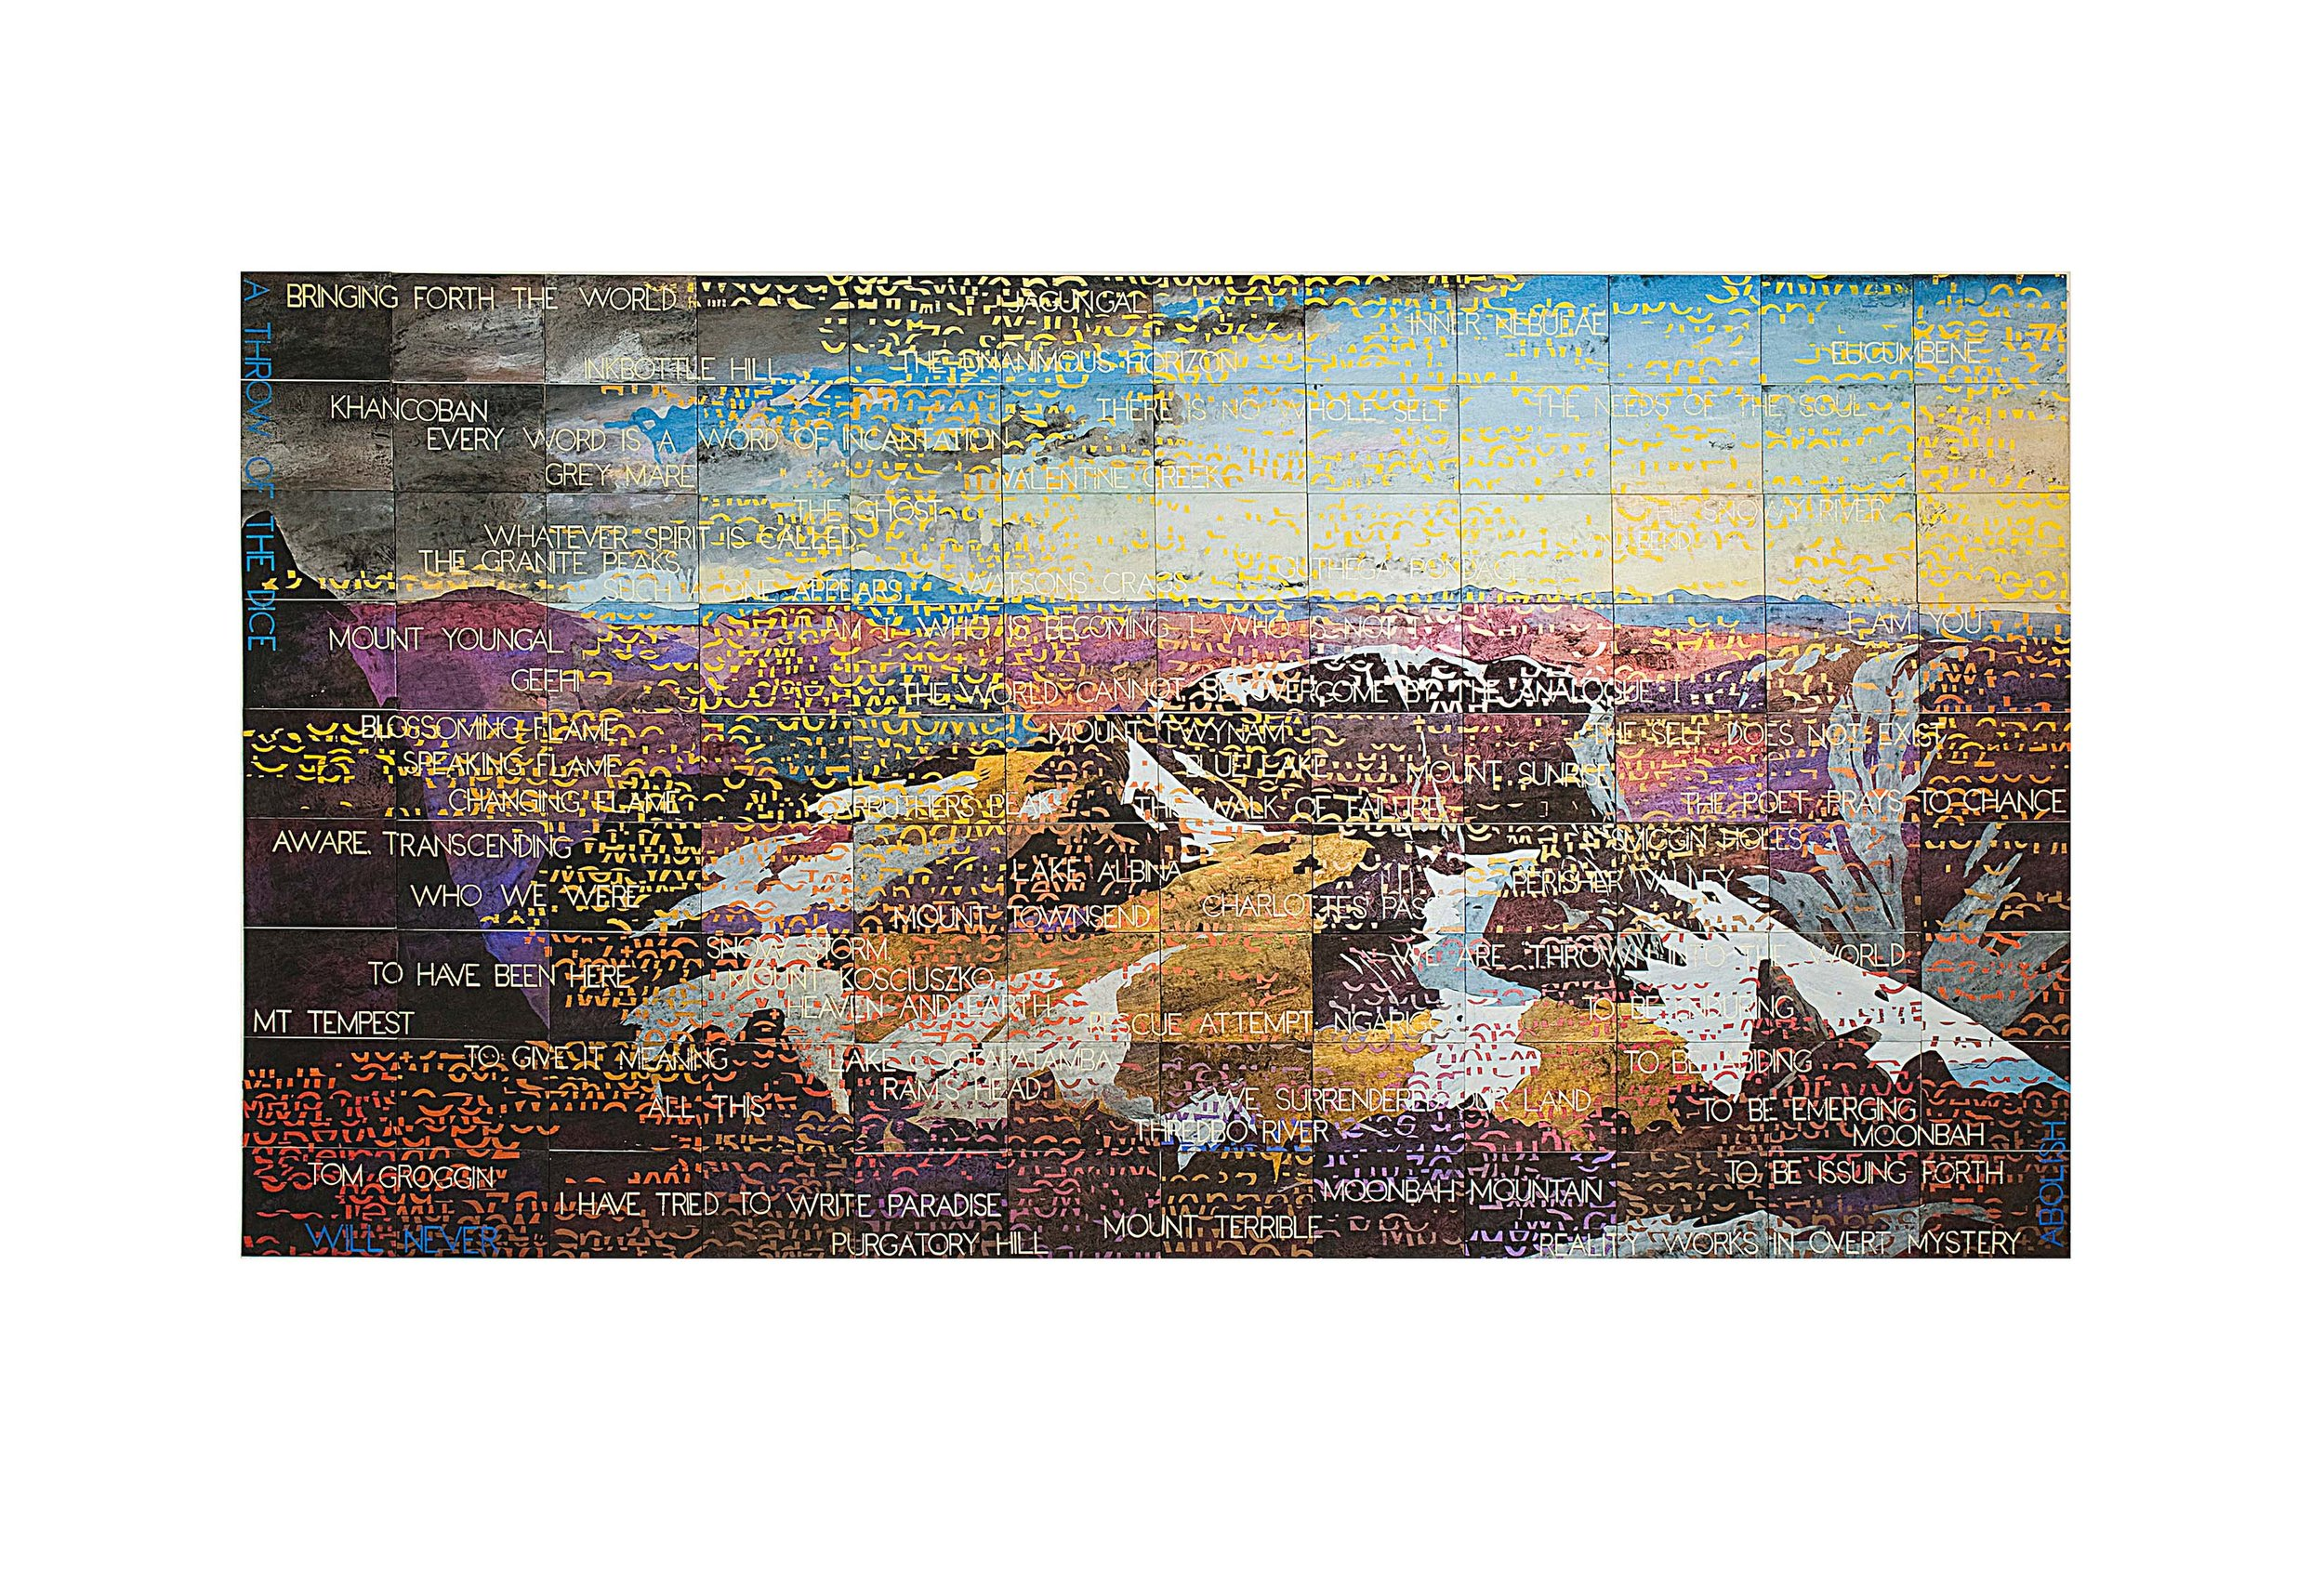 Imants Tillers   On the Mountain , 2013  acrylic, gouache on 108 canvas boards, nos. 89998-90105 226 × 424.5cm Exhibited:  Imants Tillers :  Metafisica Australe,  Roslyn Oxley9 Gallery, Sydney, 2015